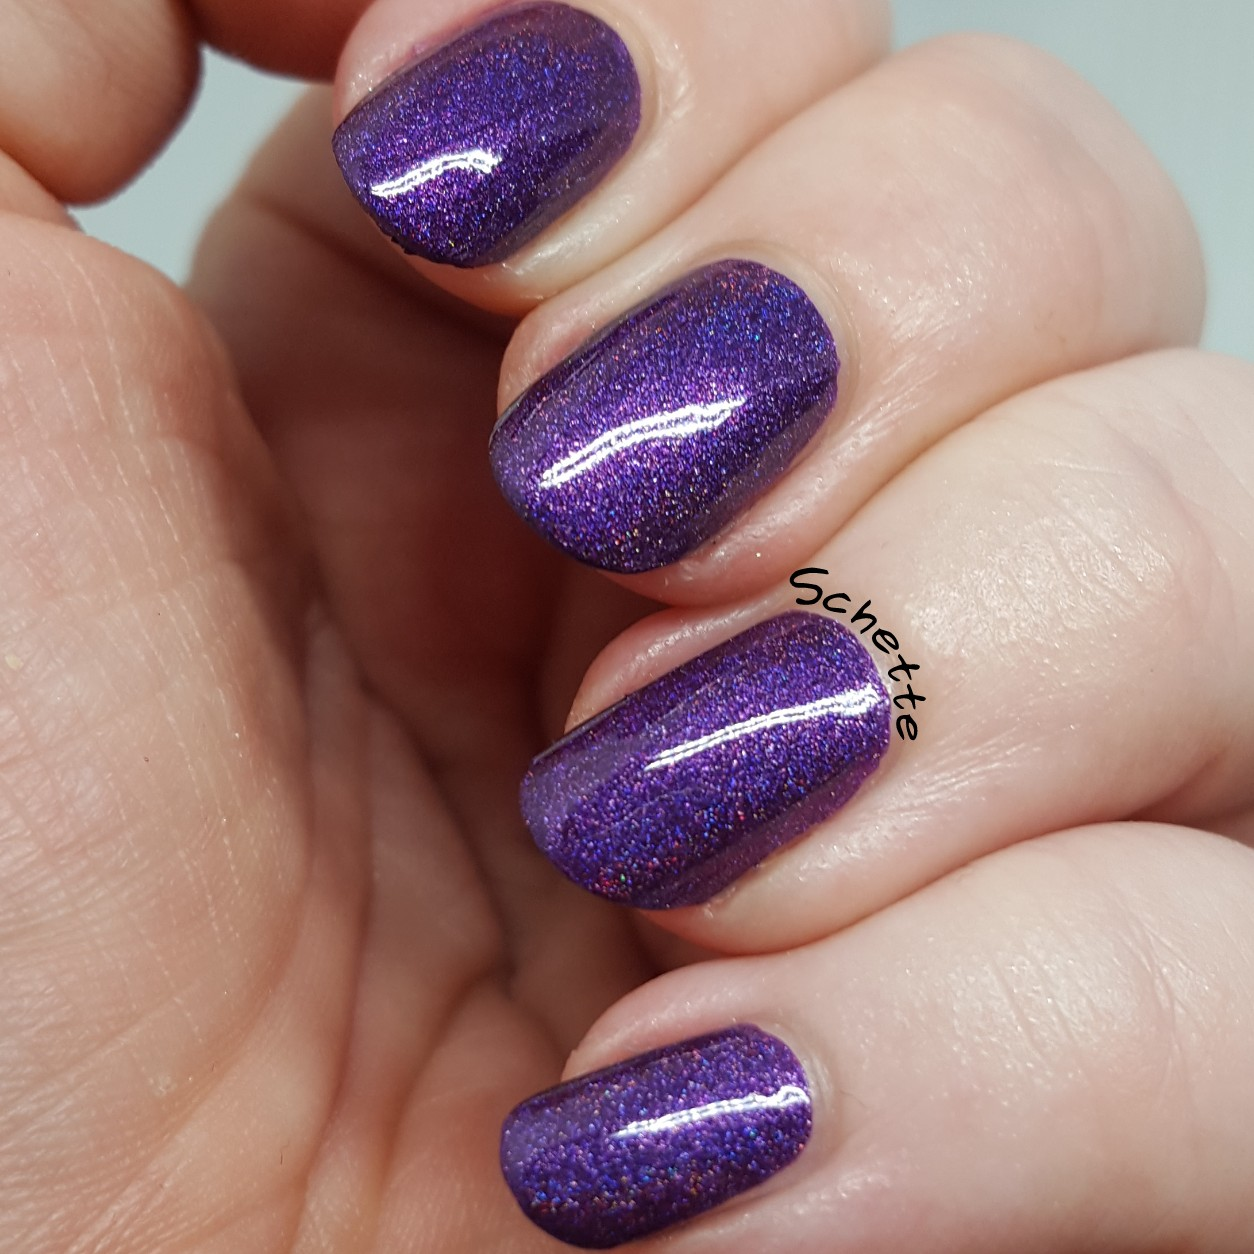 Enchanted Polish - Hella Good